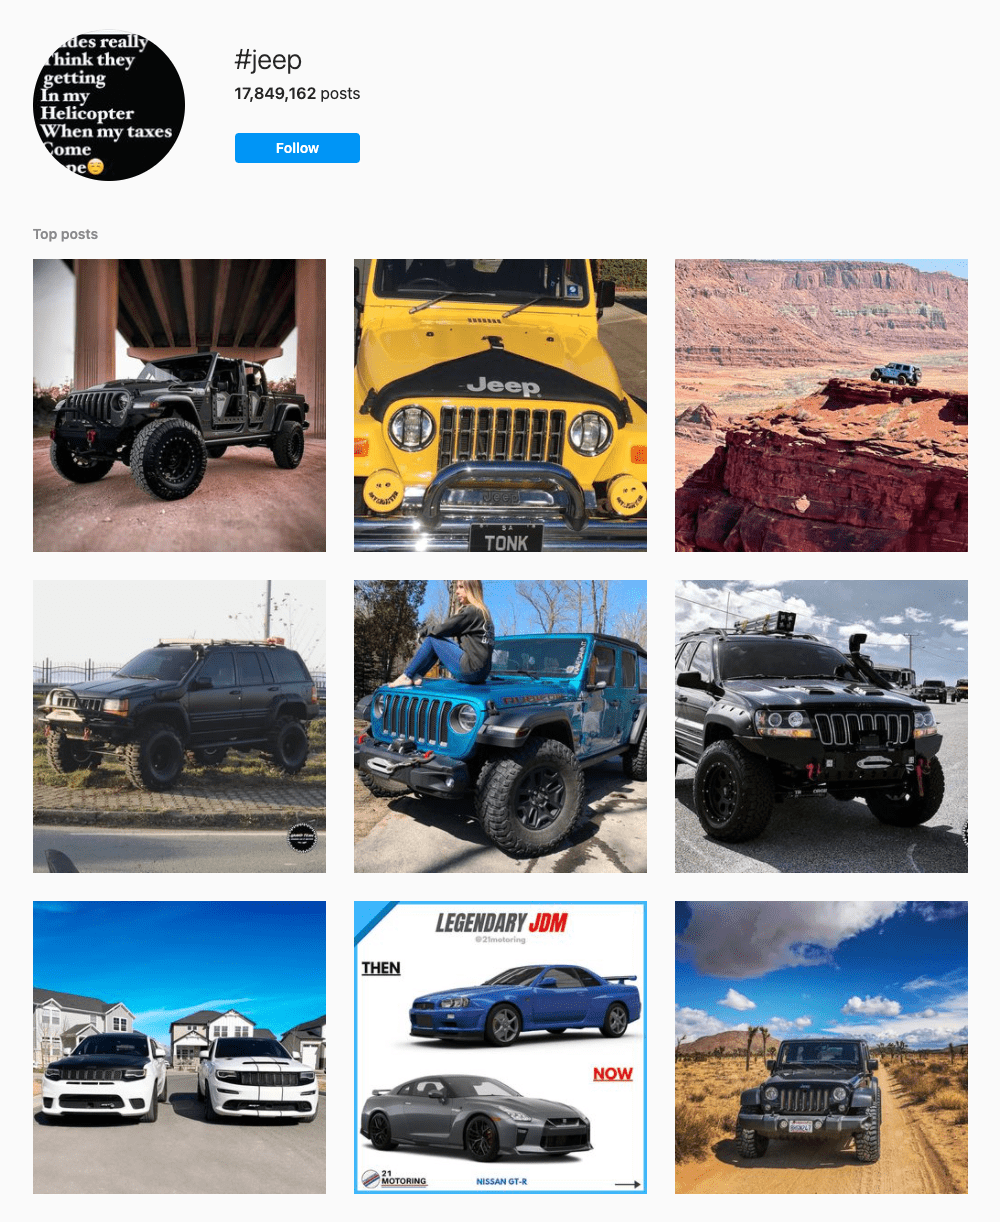 #jeep Hashtags for Instagram